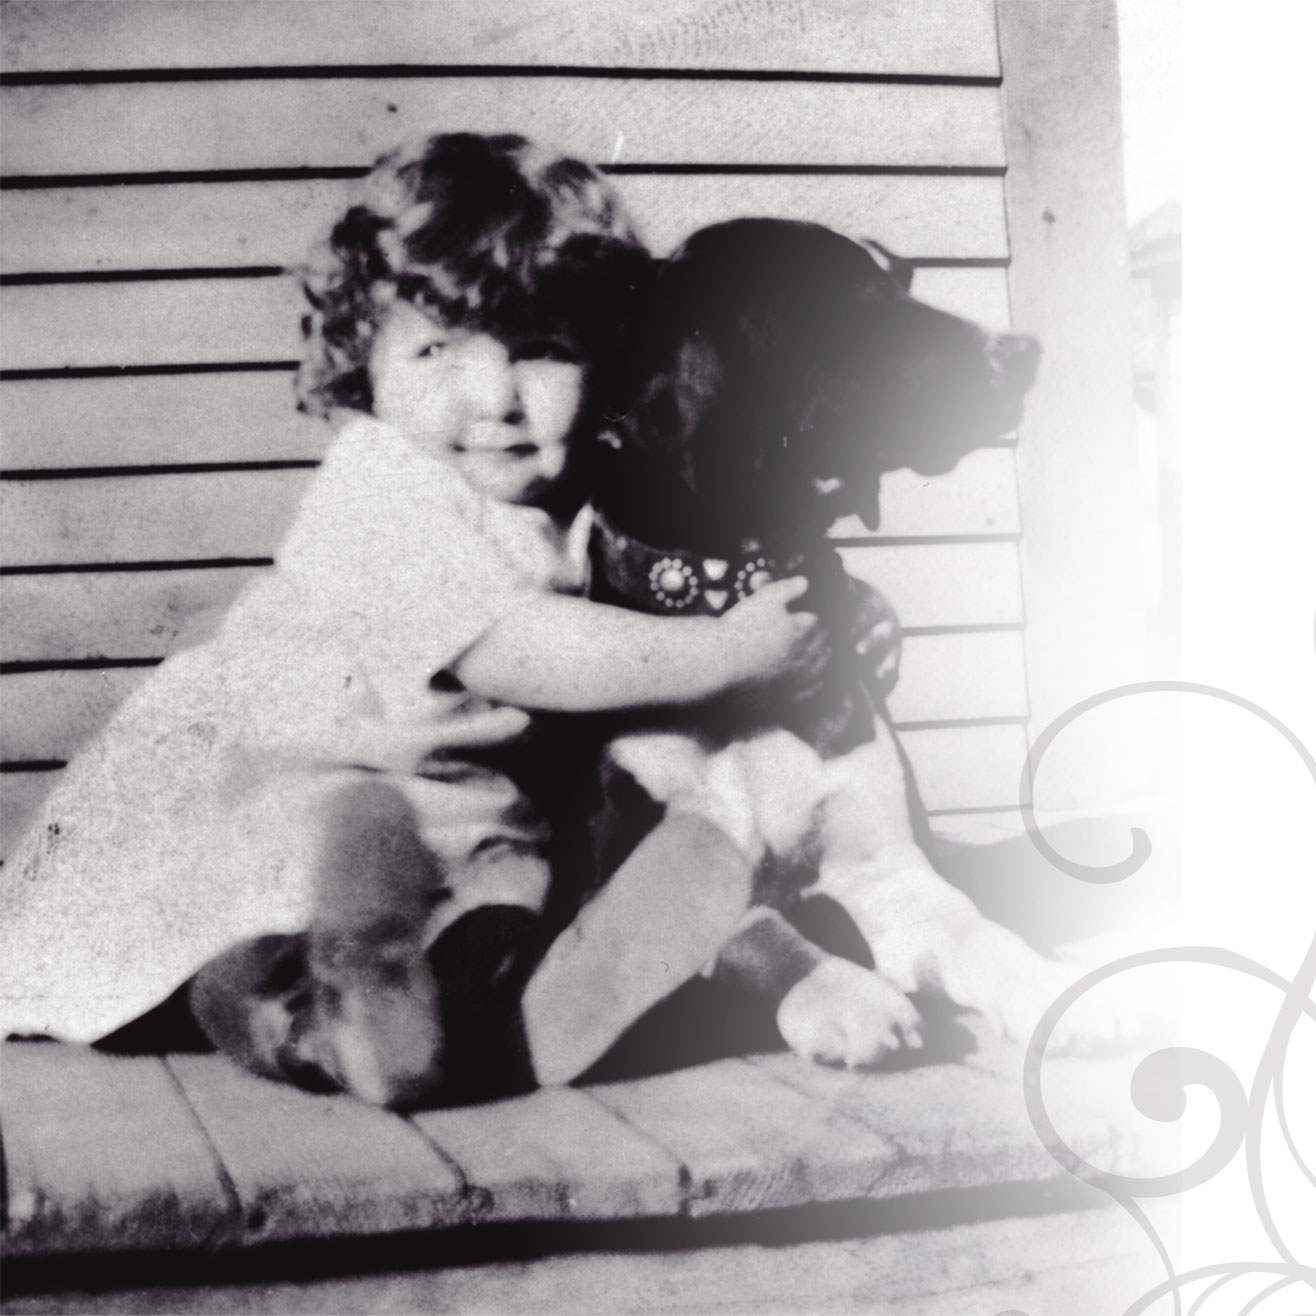 Child holding dog